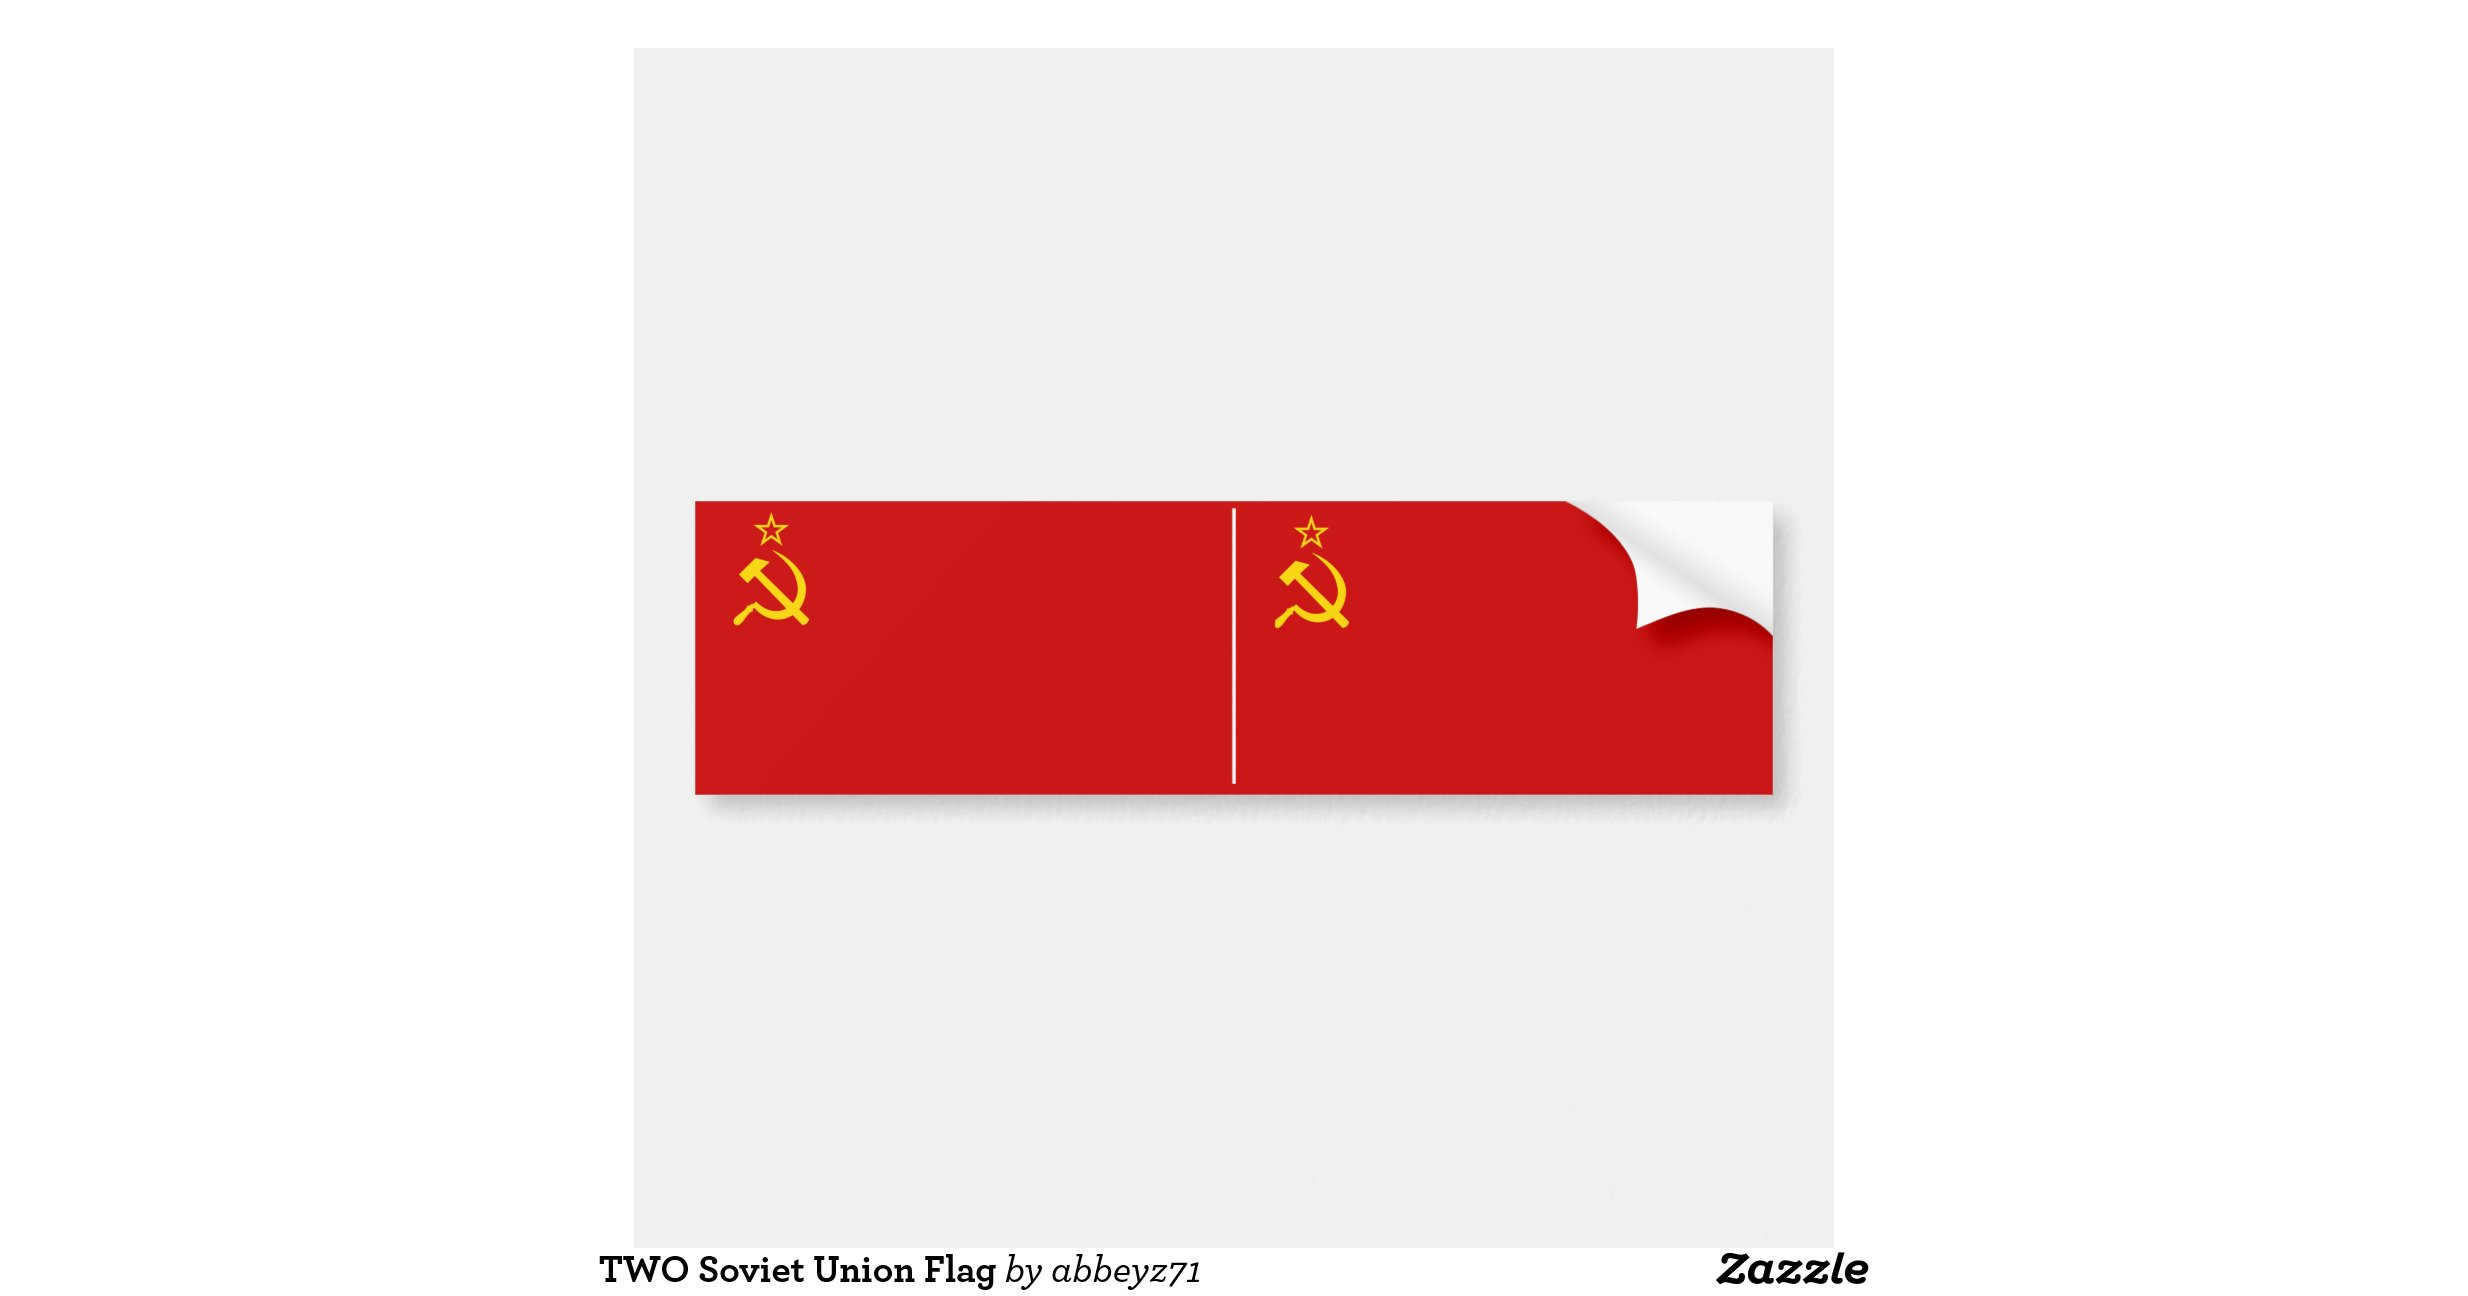 soviet union 2 essay Cold war: question and answers essay western europe had more of a democratic form of government where as eastern europe was ruled by the soviet union 2.